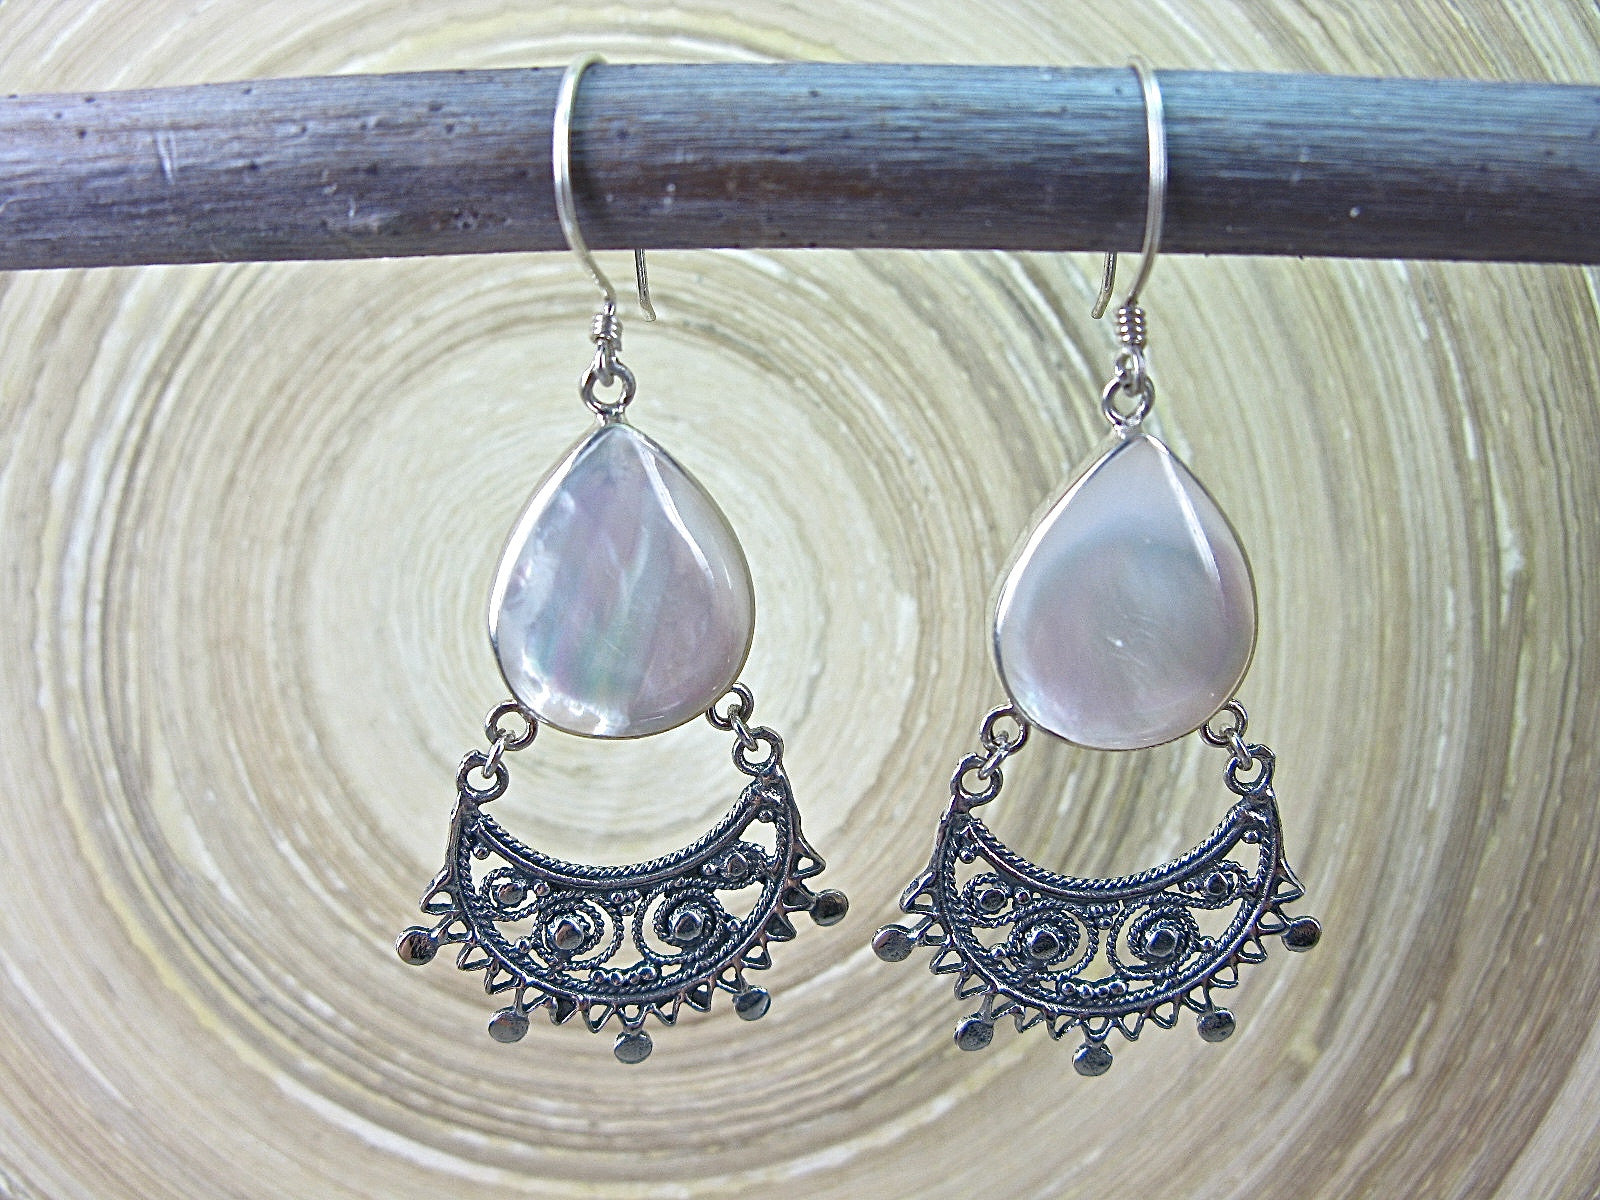 Balinese Filigree Mother of Pearl Oxidized 925 Sterling Silver Earrings Earrings - Faith Owl